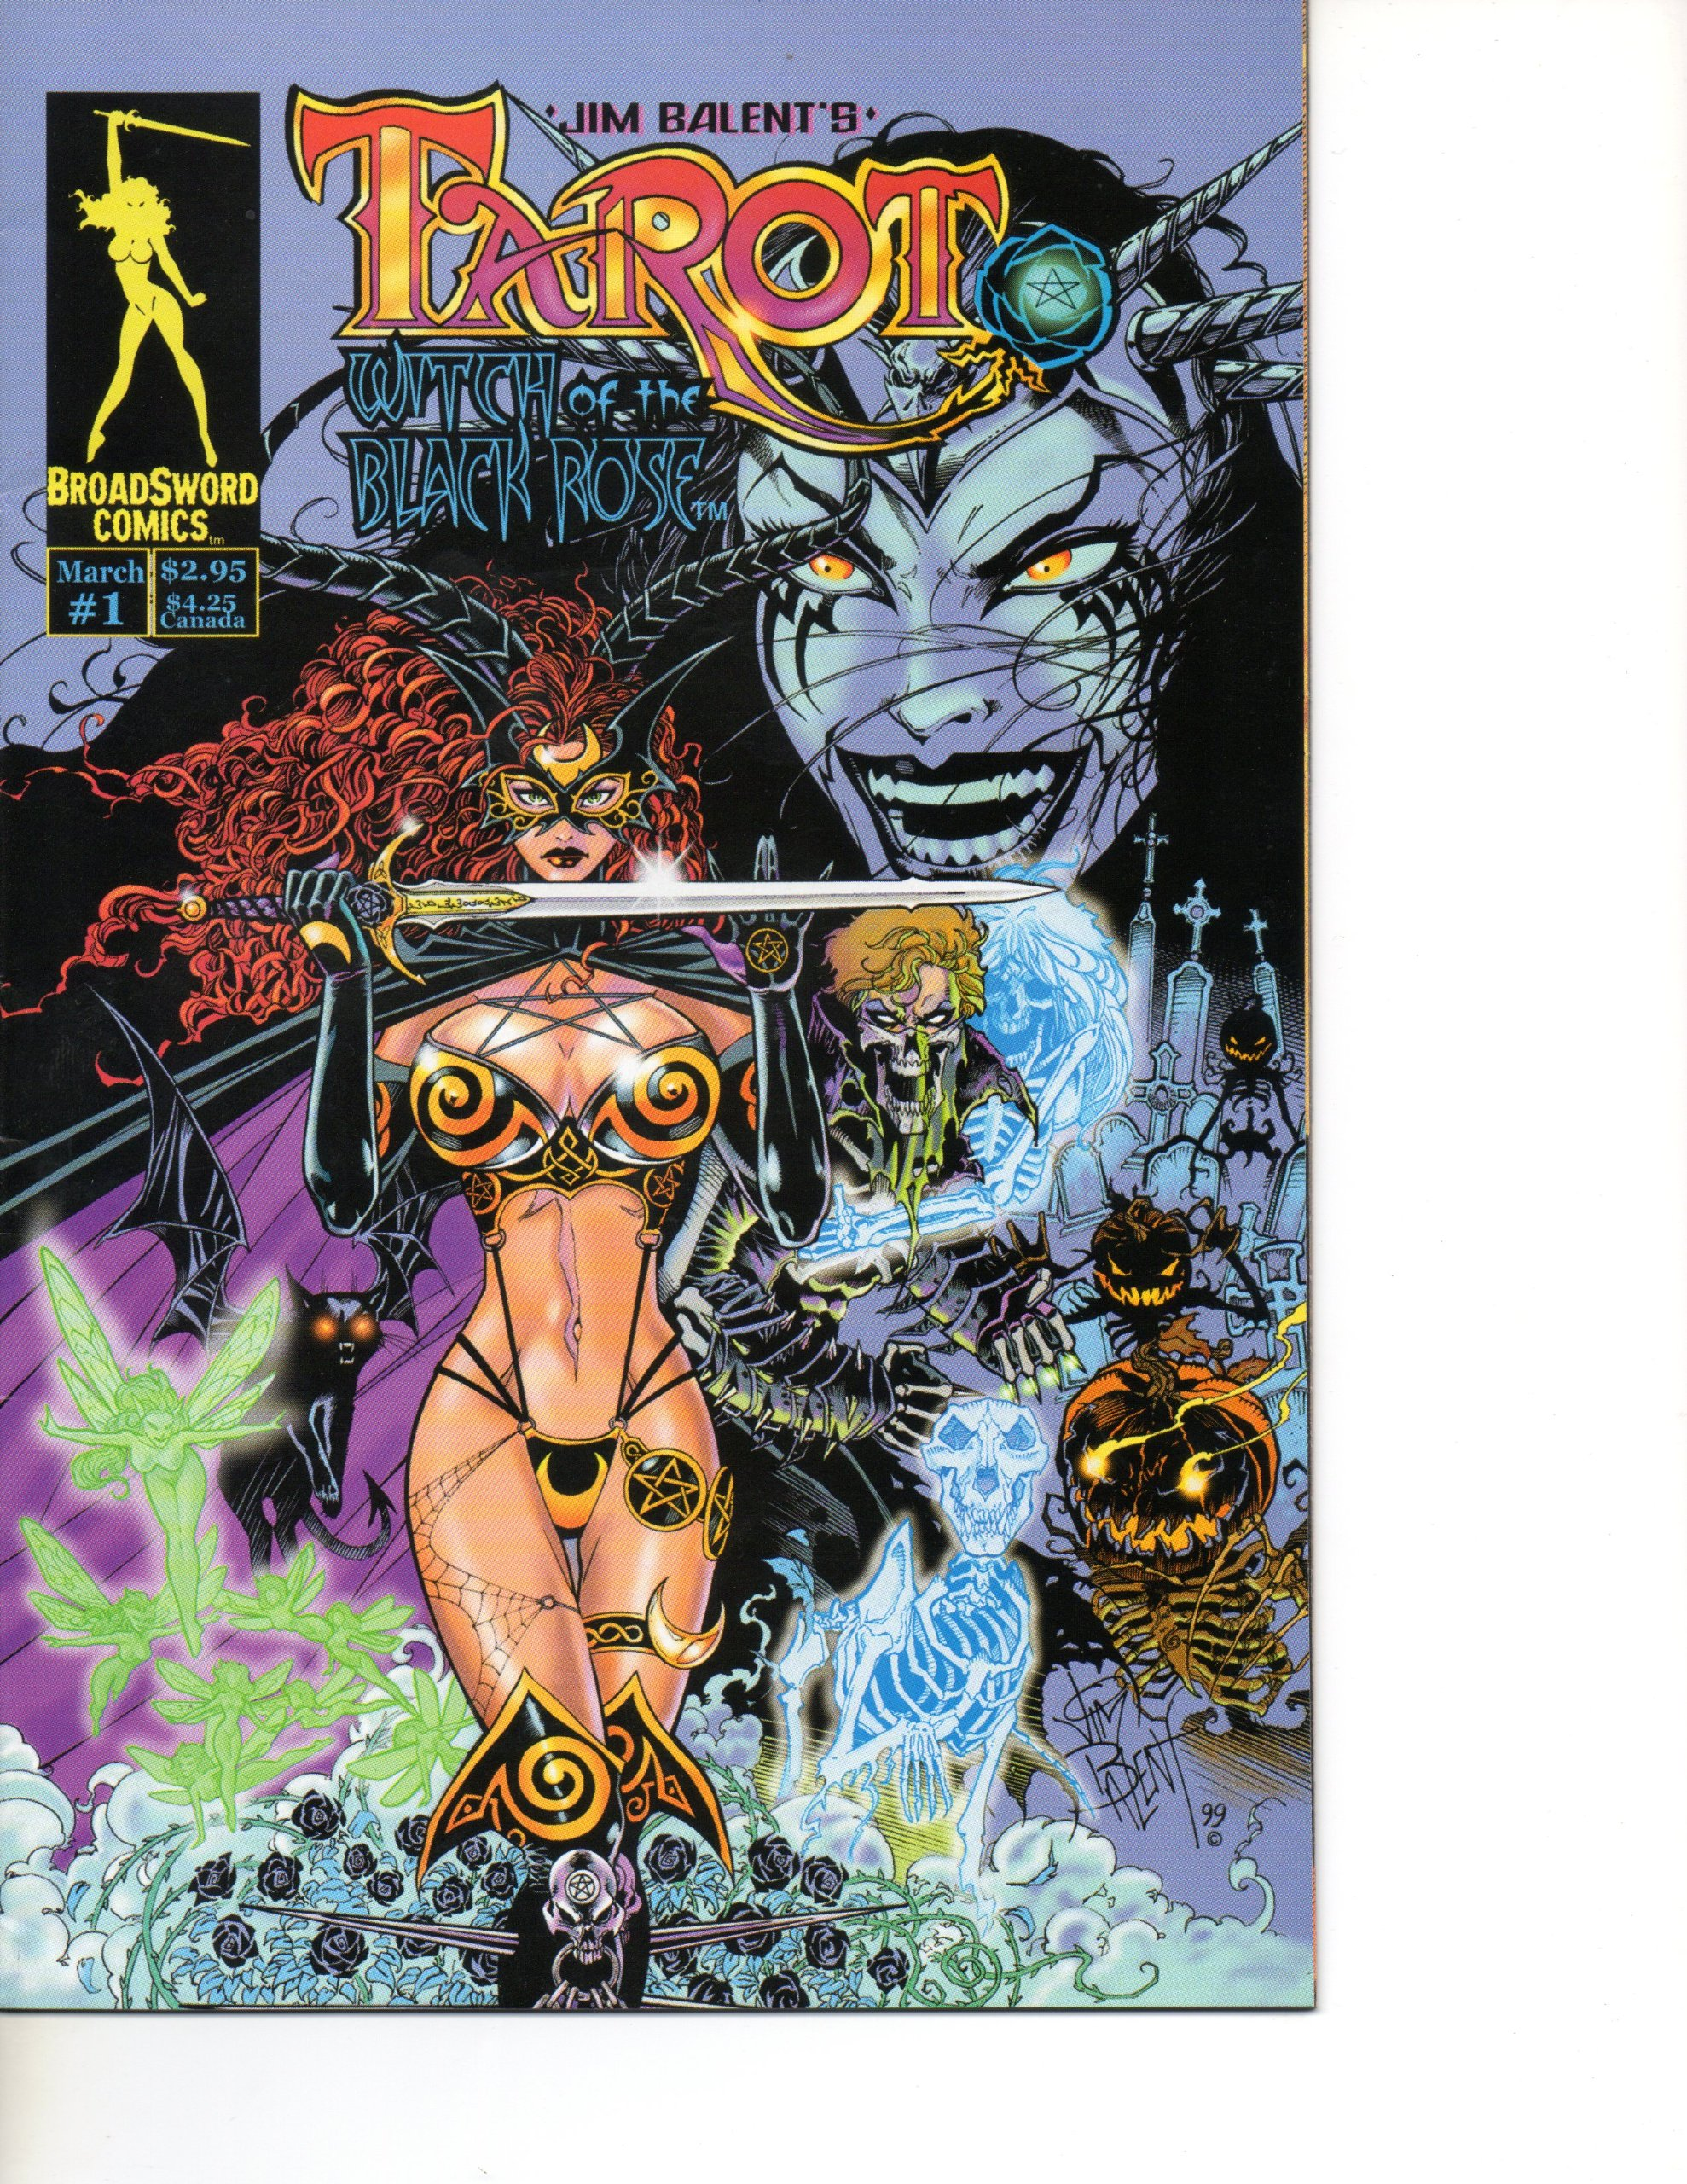 Read Online Tarot Witch of the Black Rose #1 Jim Balent Cover ebook